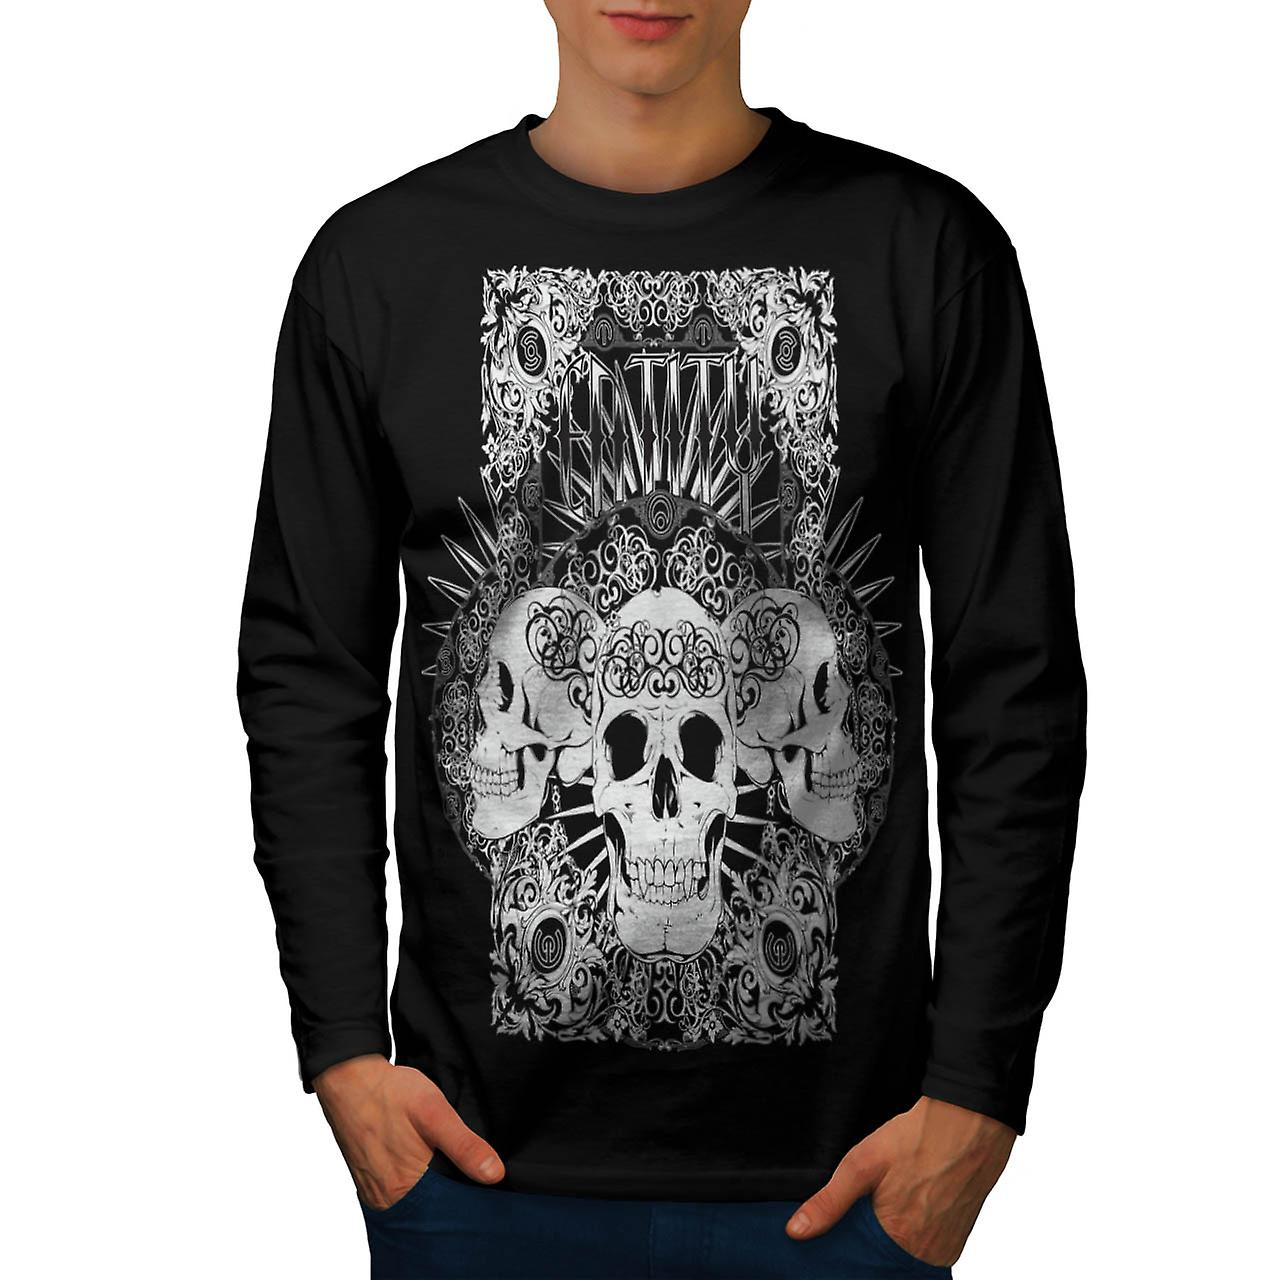 Entità Monster Skull cortile tomba uomo Black t-shirt manica lunga | Wellcoda